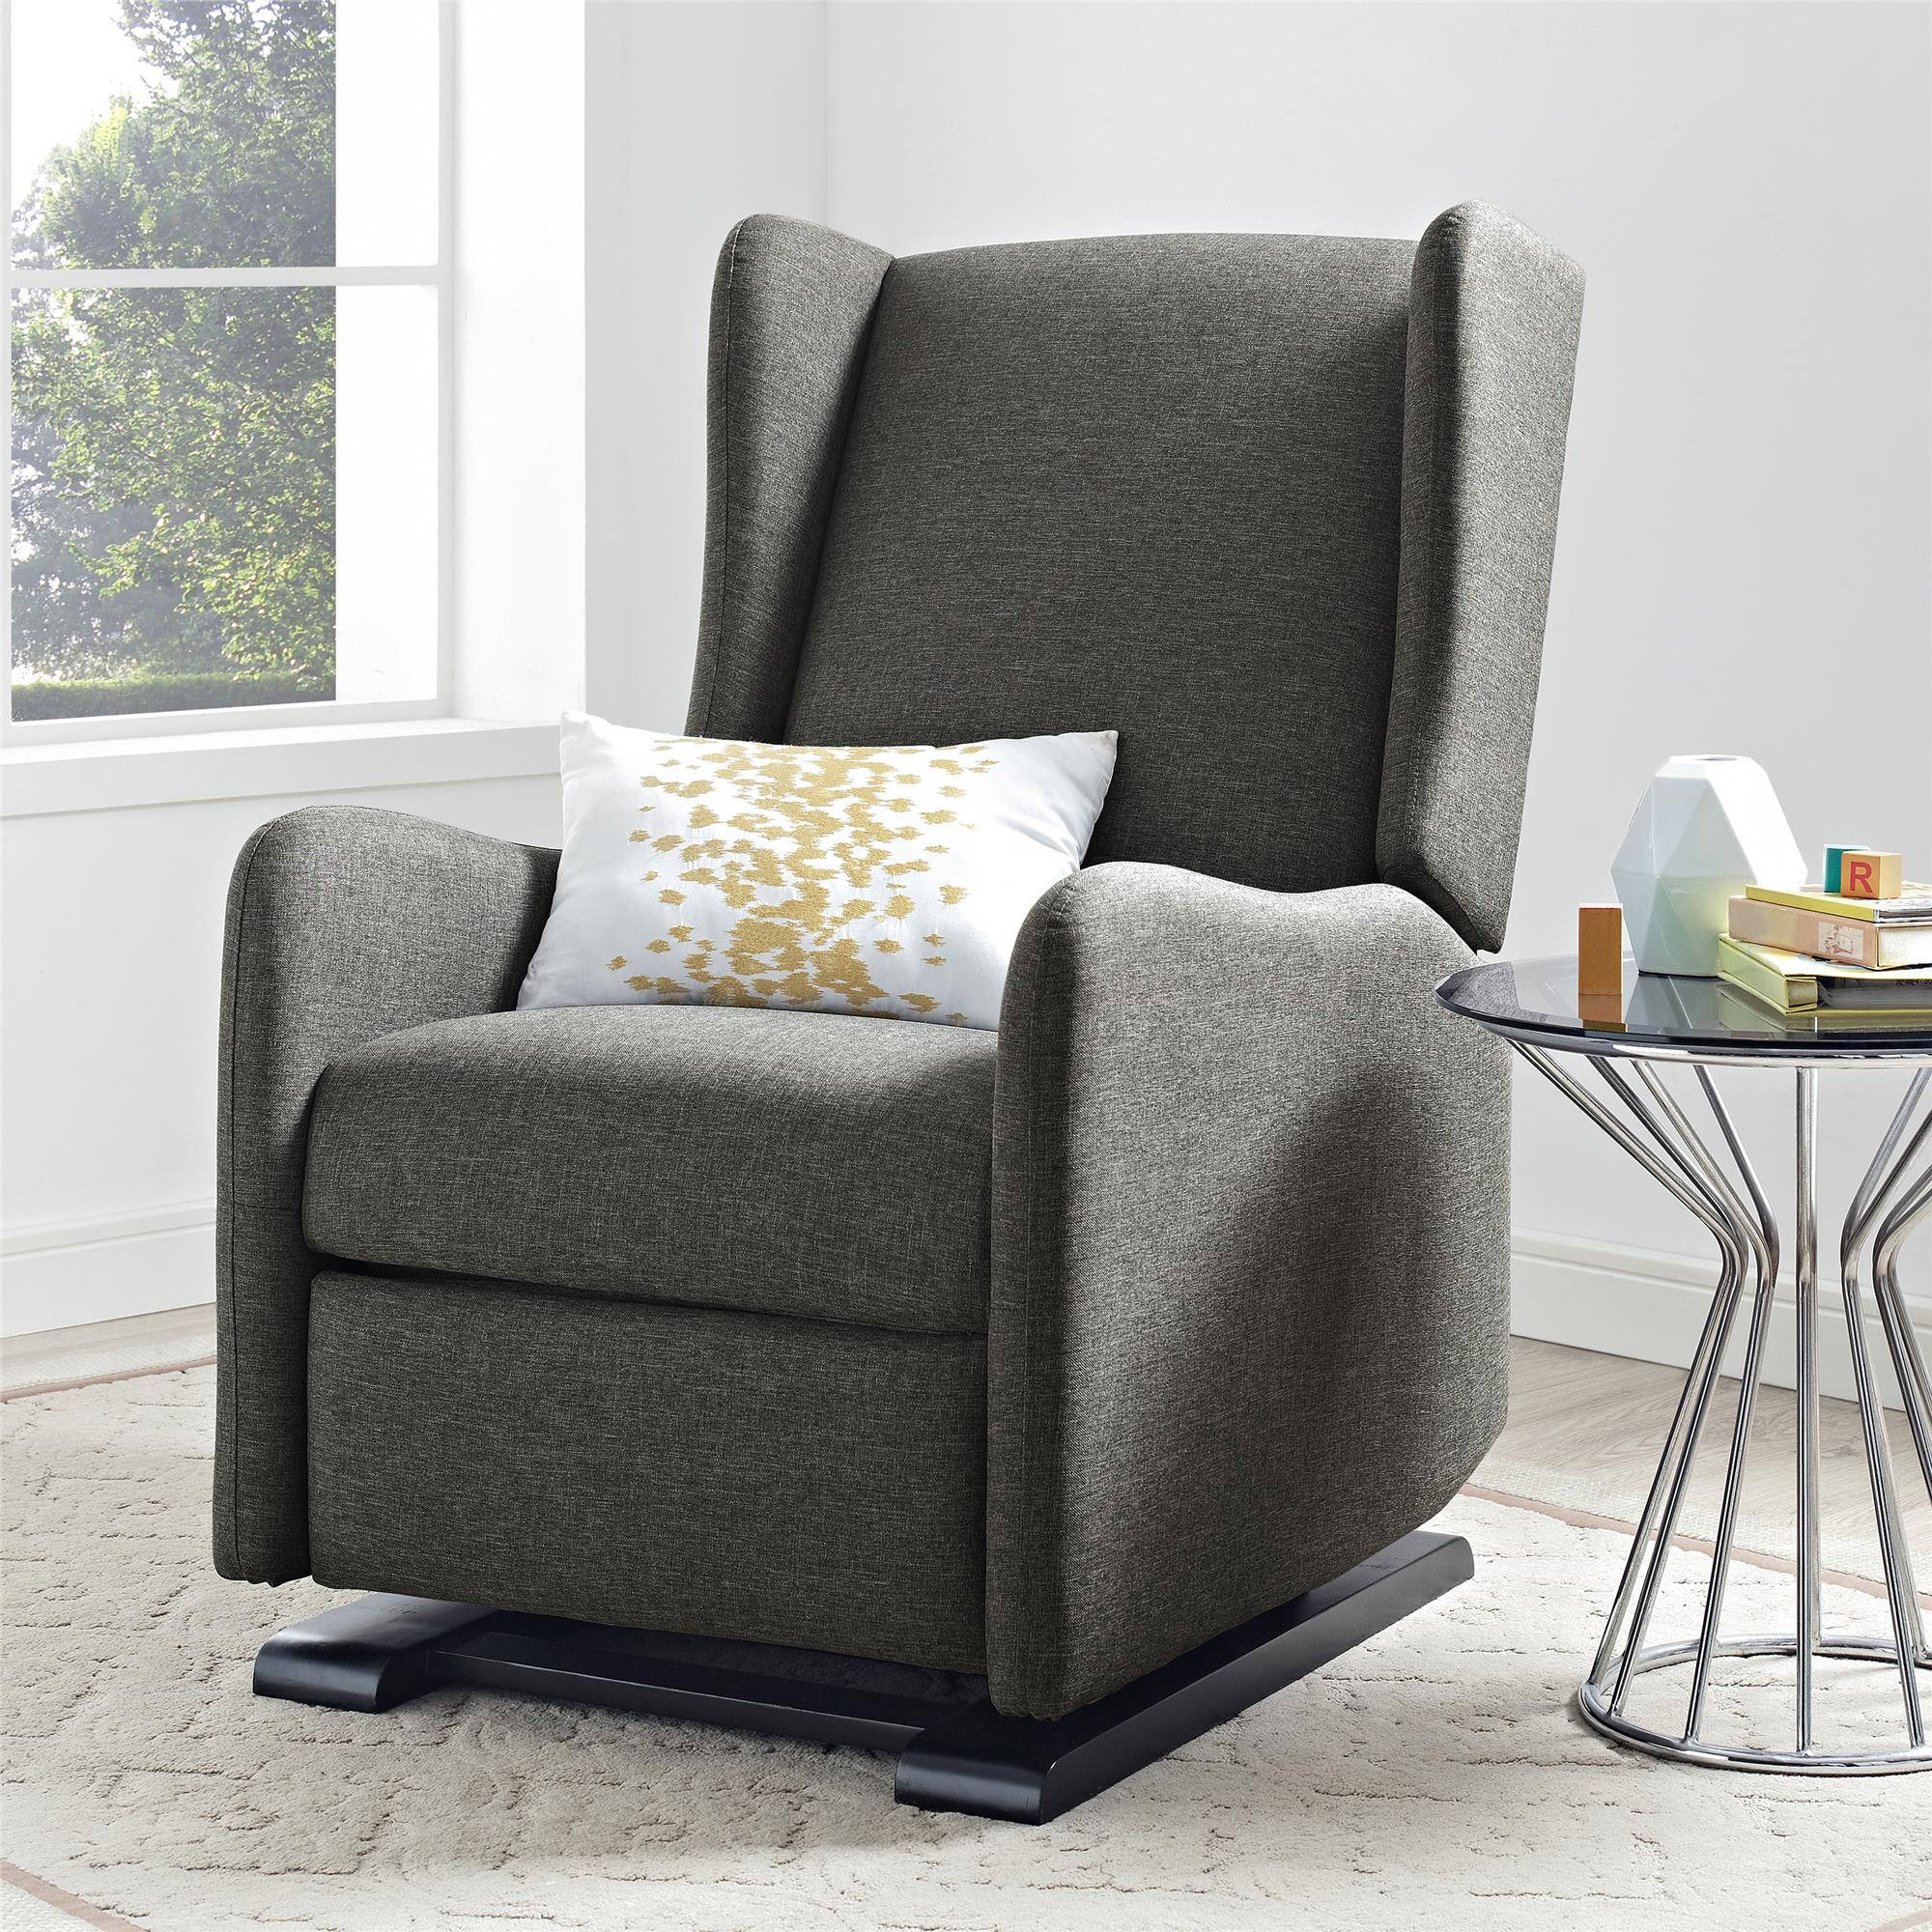 Baby Relax Rylee Wingback Gliding Recliner, Gray by Baby Relax